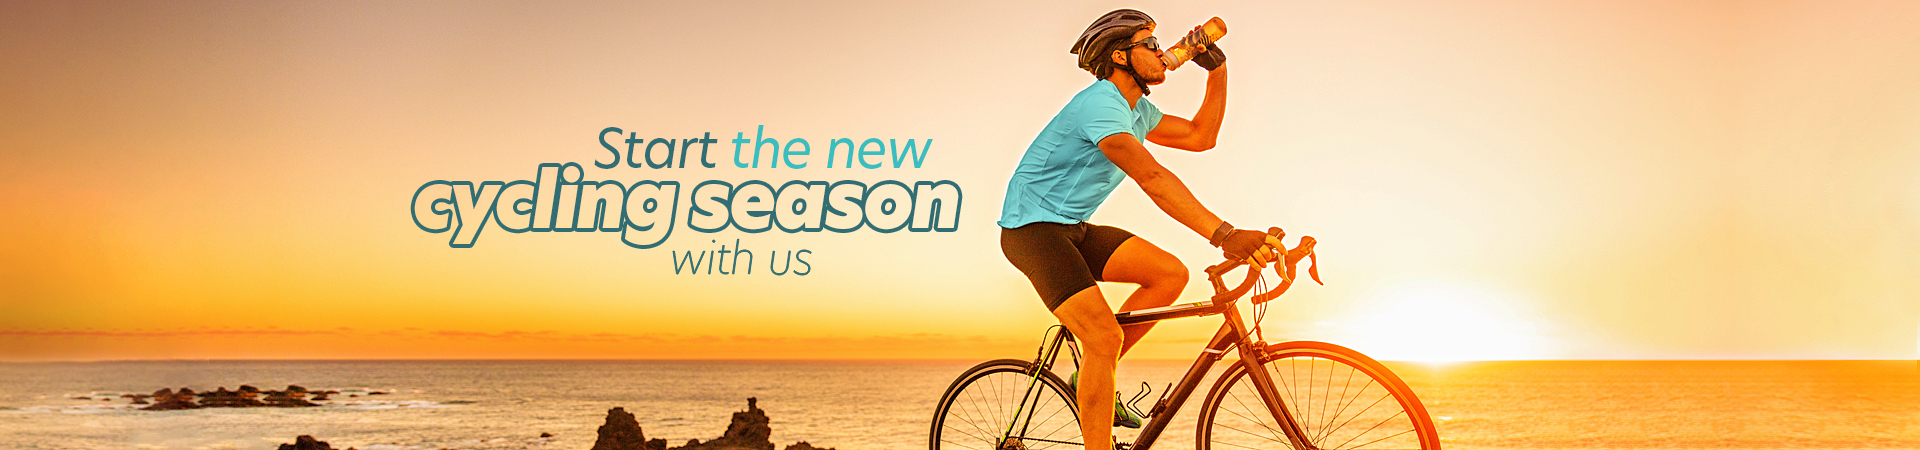 Start the new cycling season with us